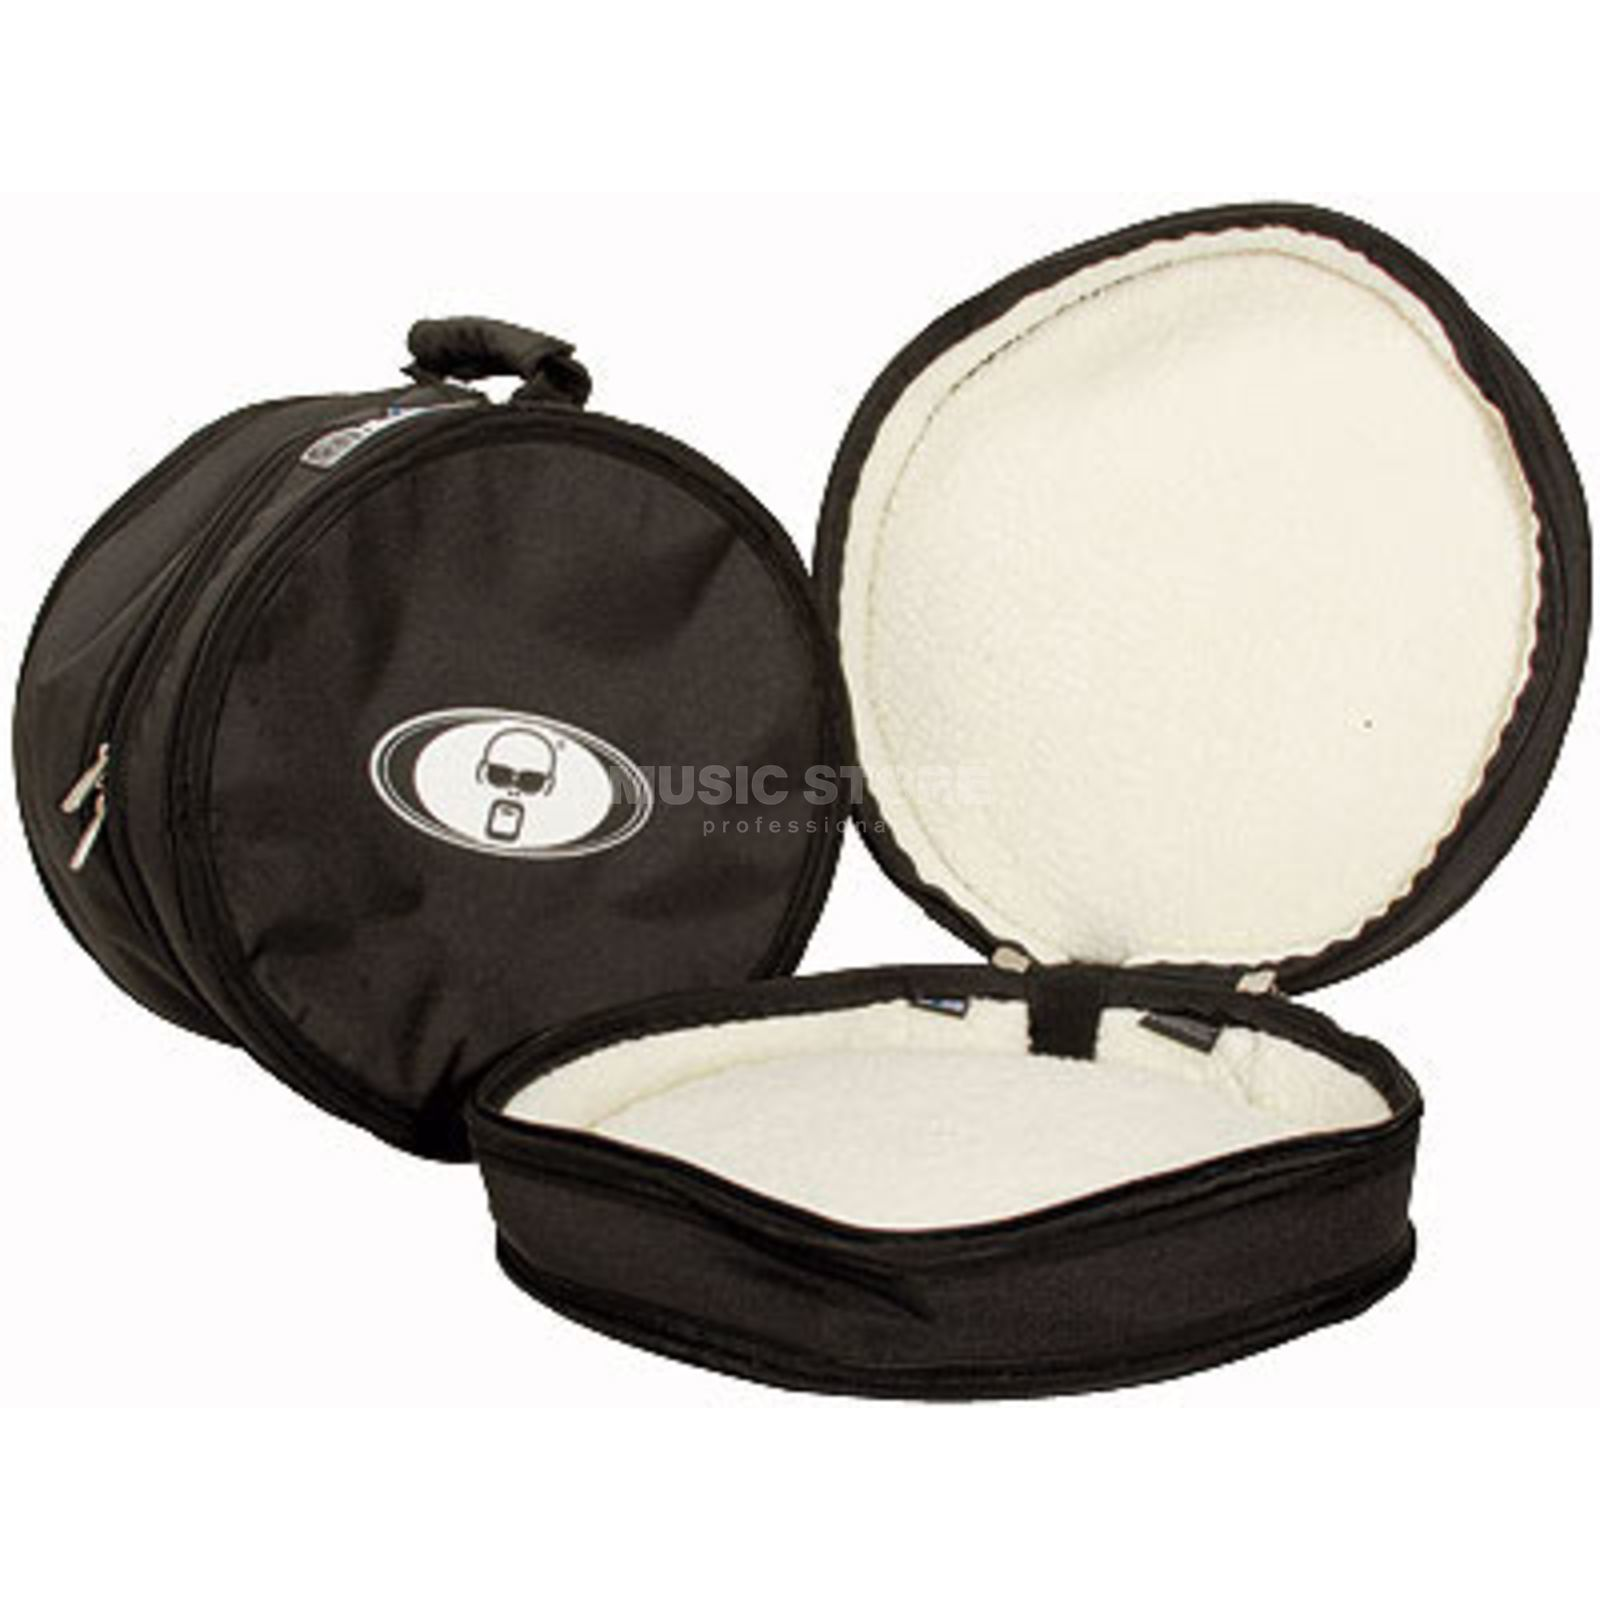 "Protection Racket Tom Bag 5014, 14""x10"" Product Image"